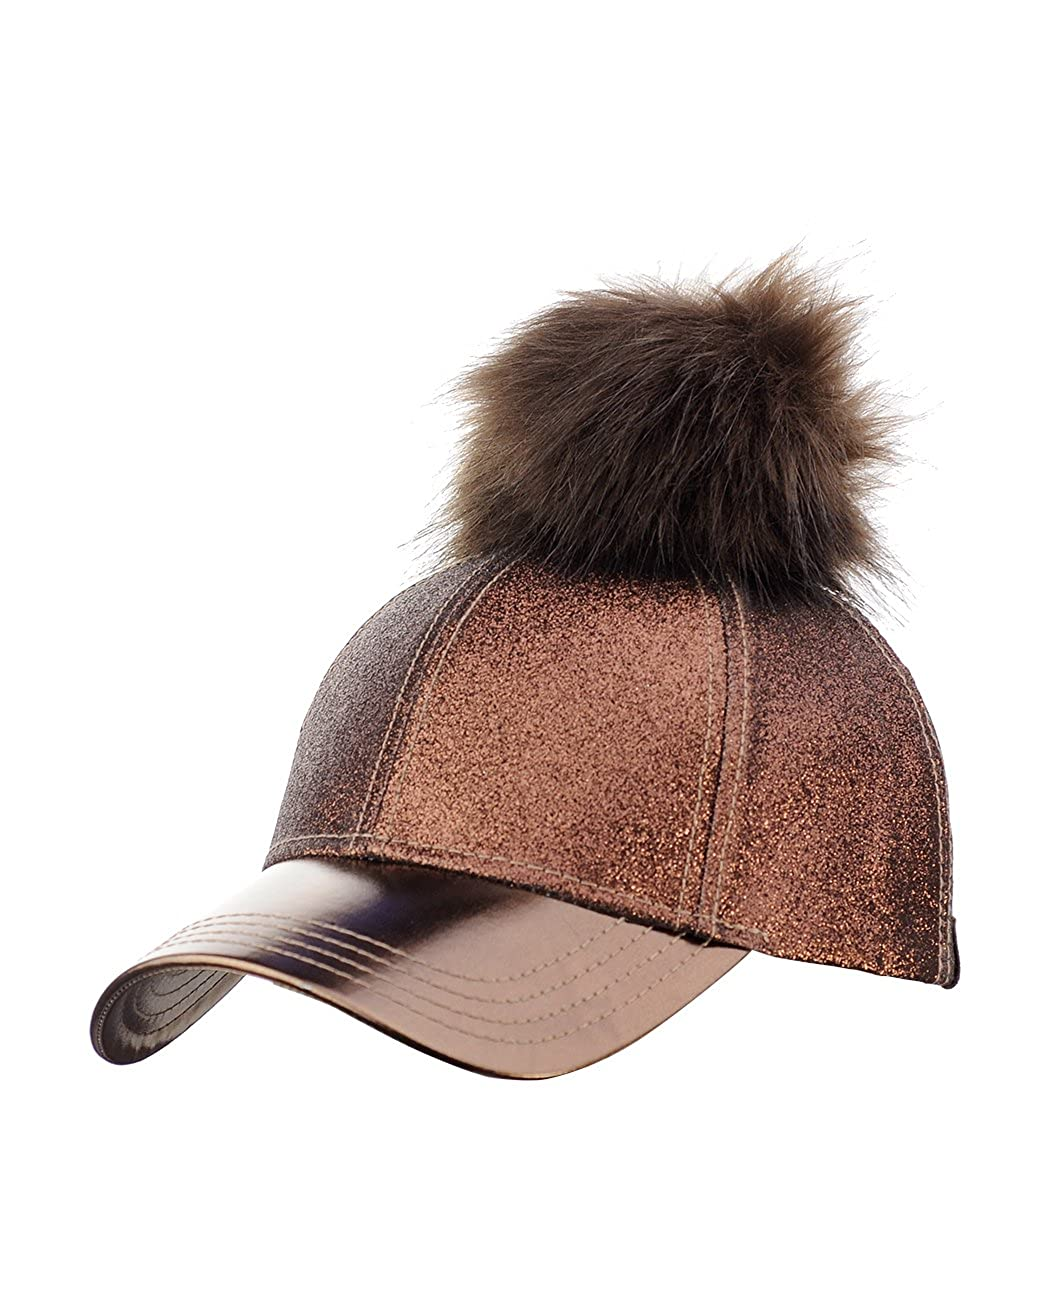 2d7656a96bd C.C Glitter Style Precurved PU Leather Baseball Cap w Attachable Pom ...